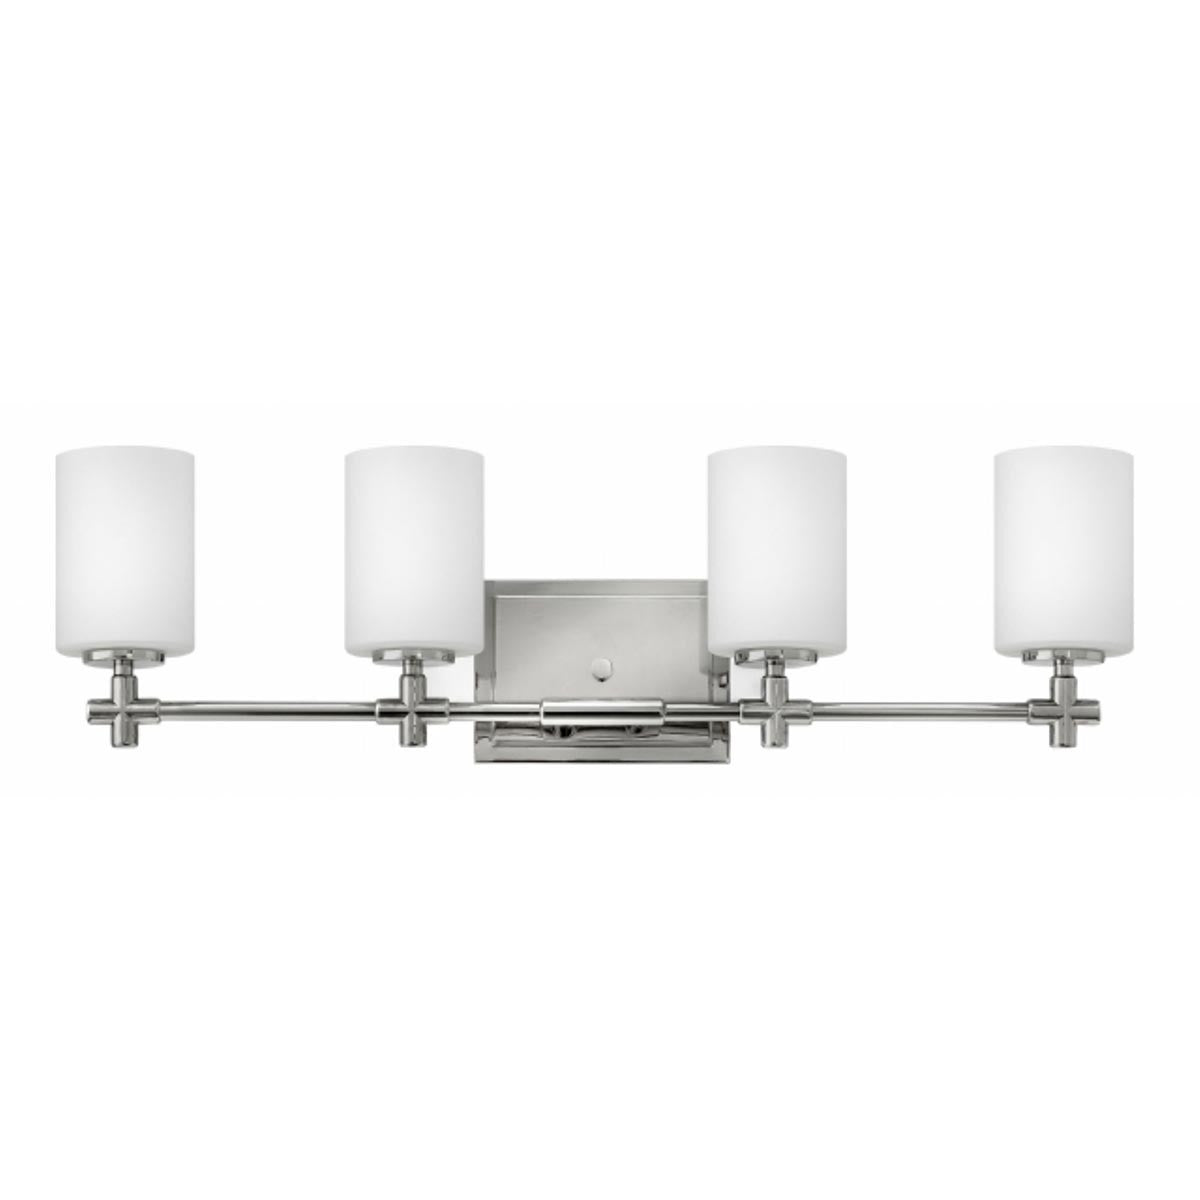 Hinkley 4 Light Laurel Vanity in Polished Nickel 57553PN